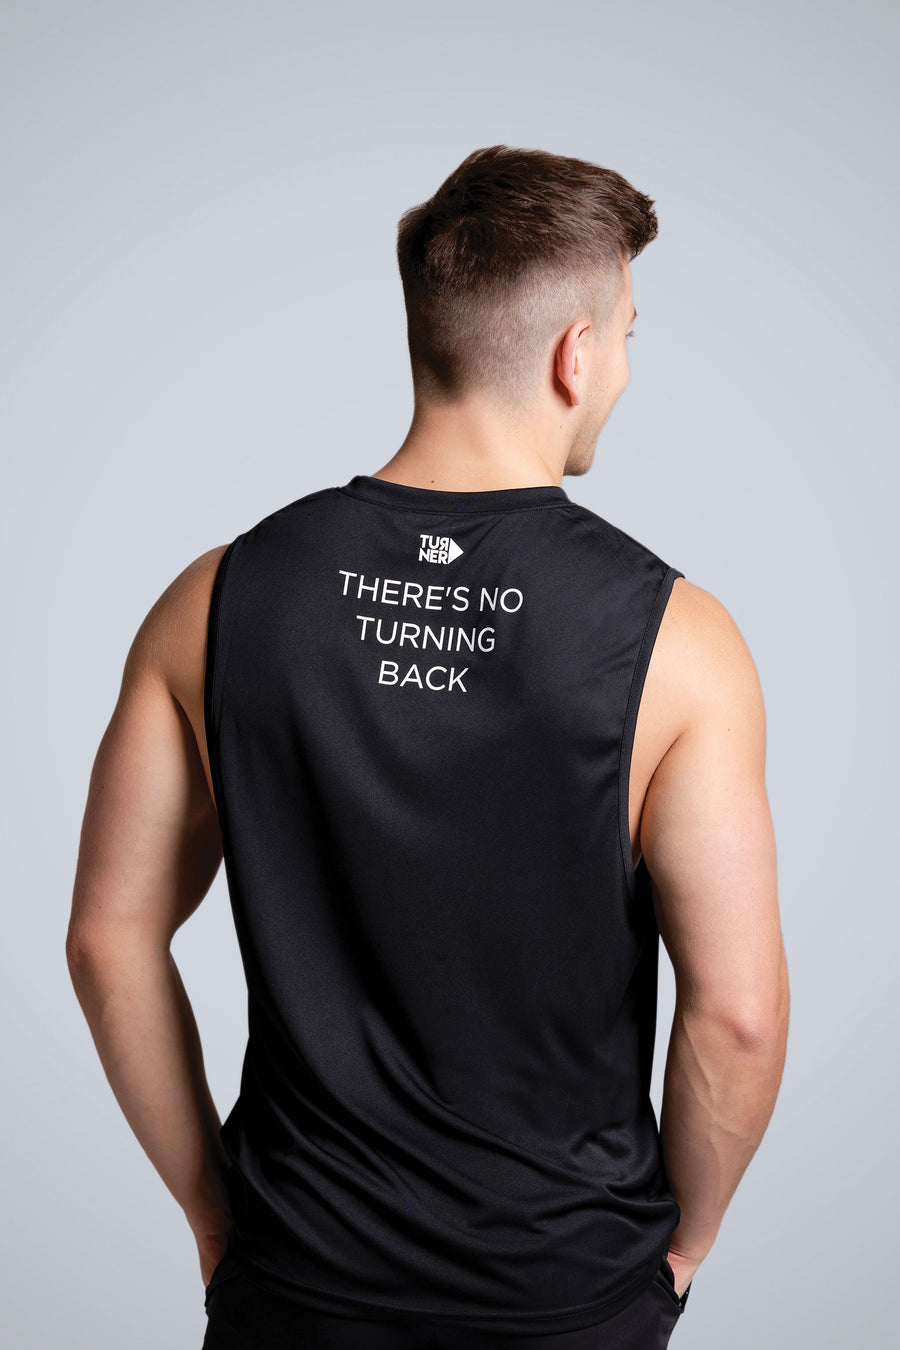 Men's FreedomFit Tank Top - Black